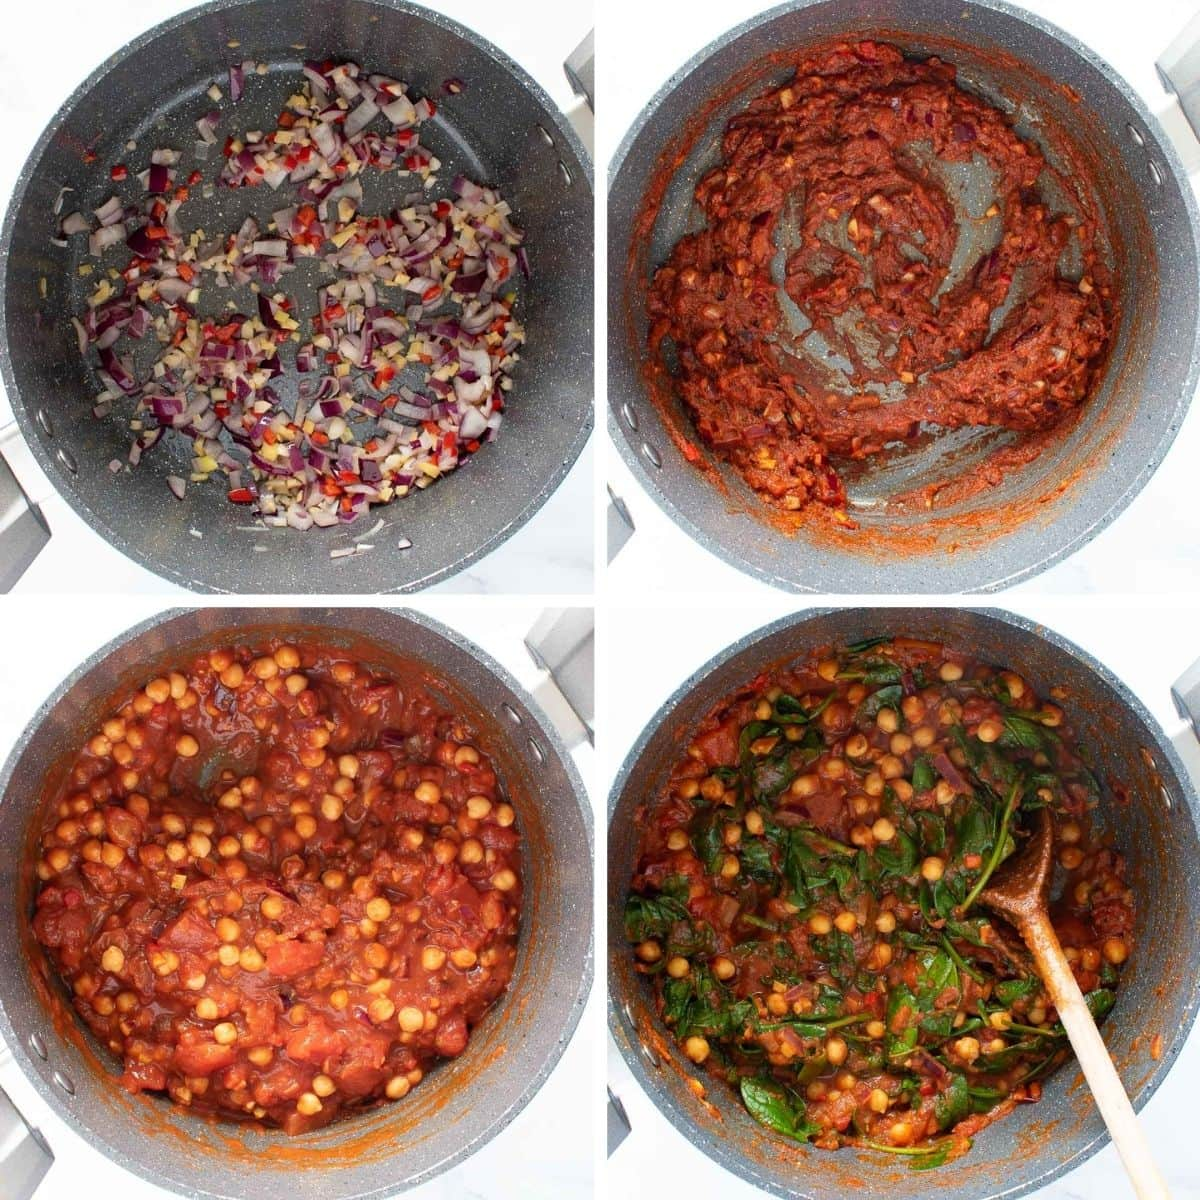 Step by step images showing how to make chickpea and spinach curry.